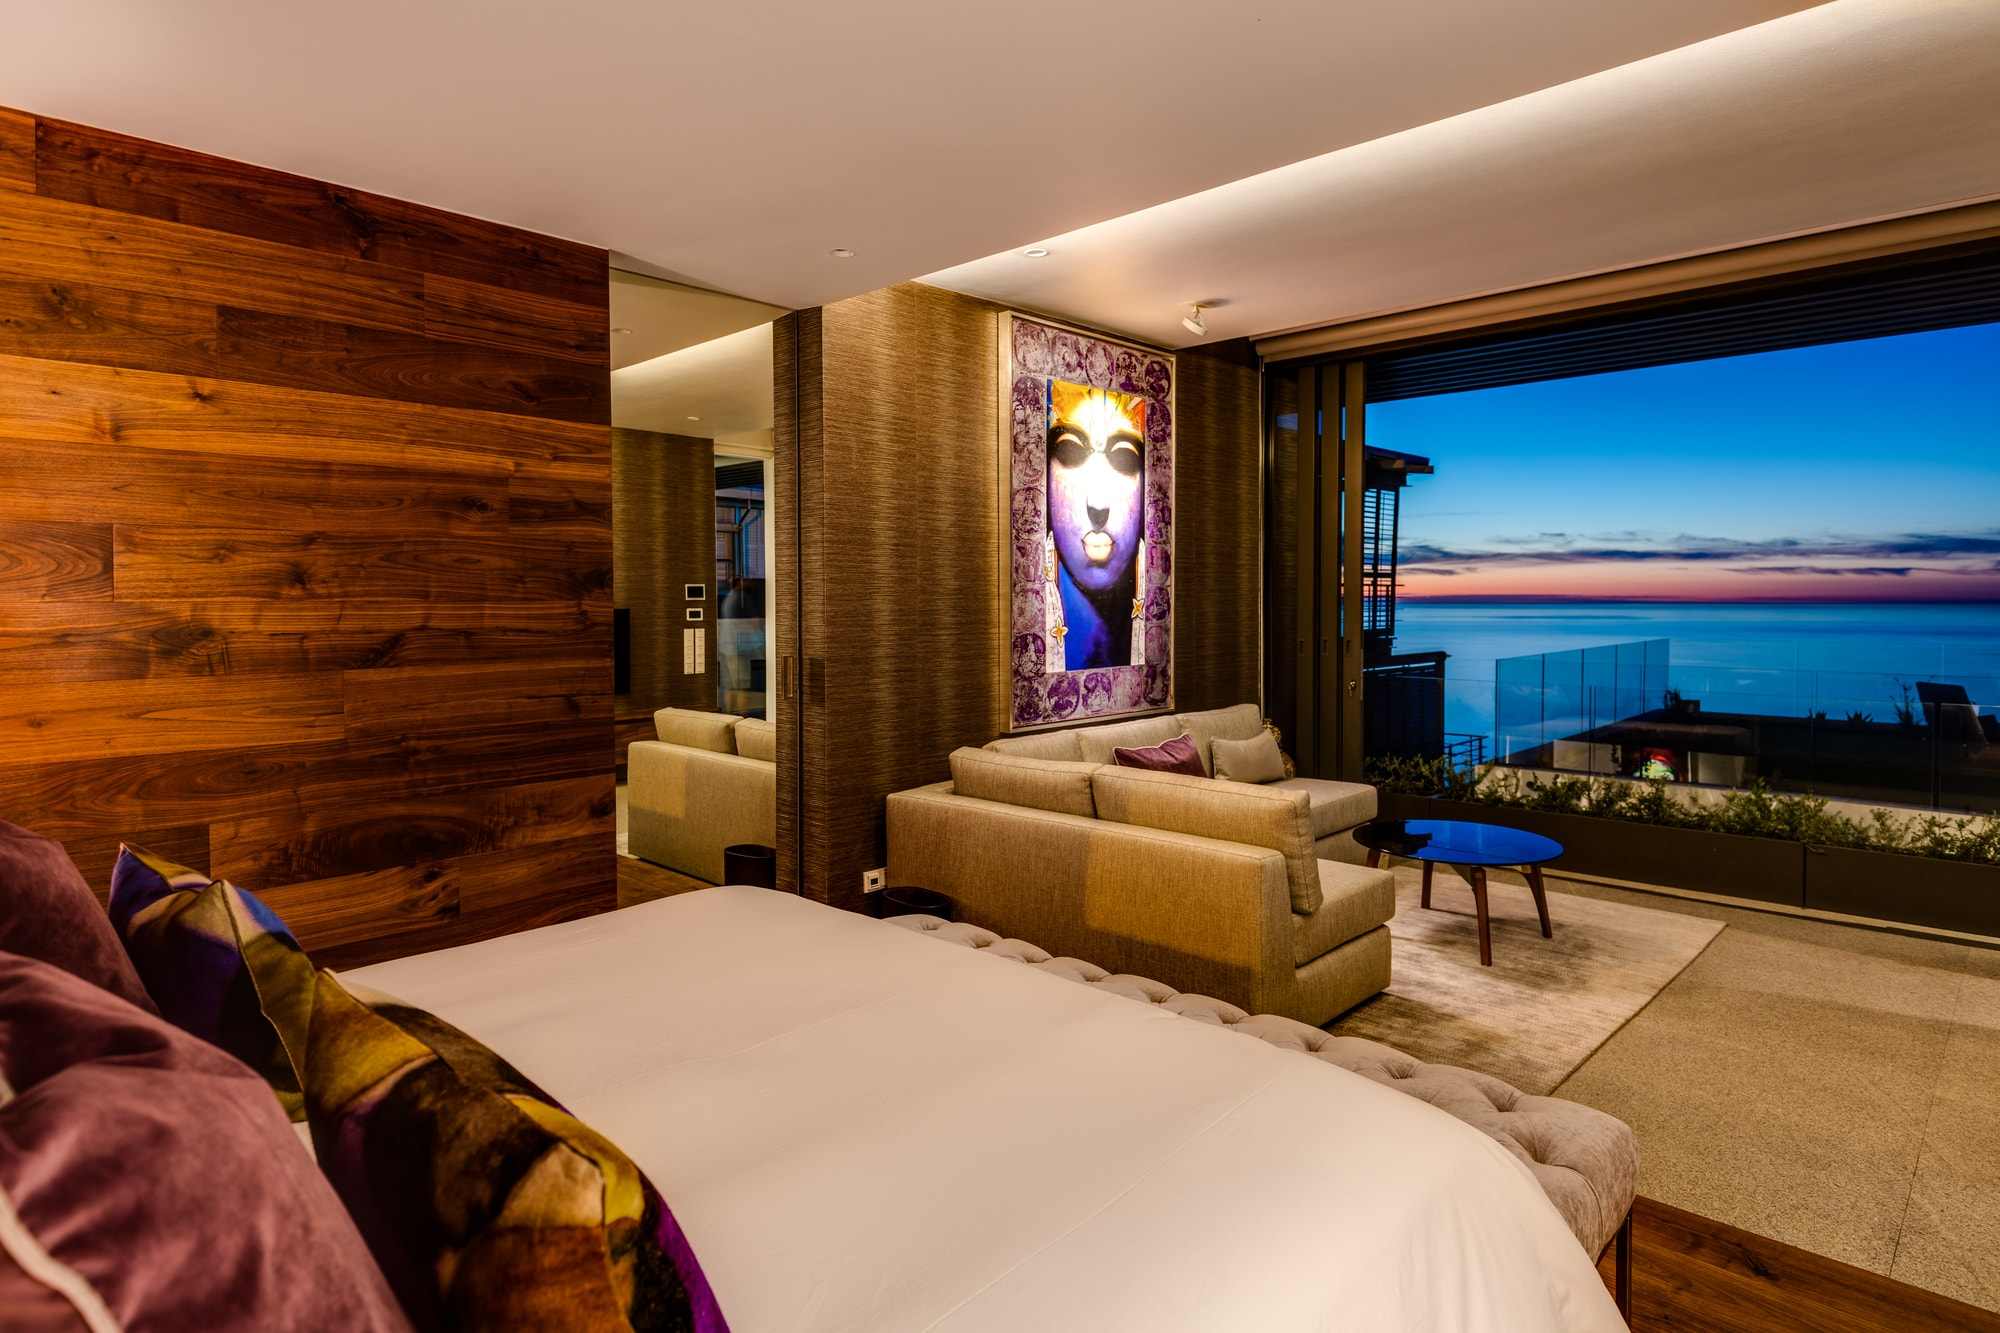 Sealion master bedroom with view of ocean skyline